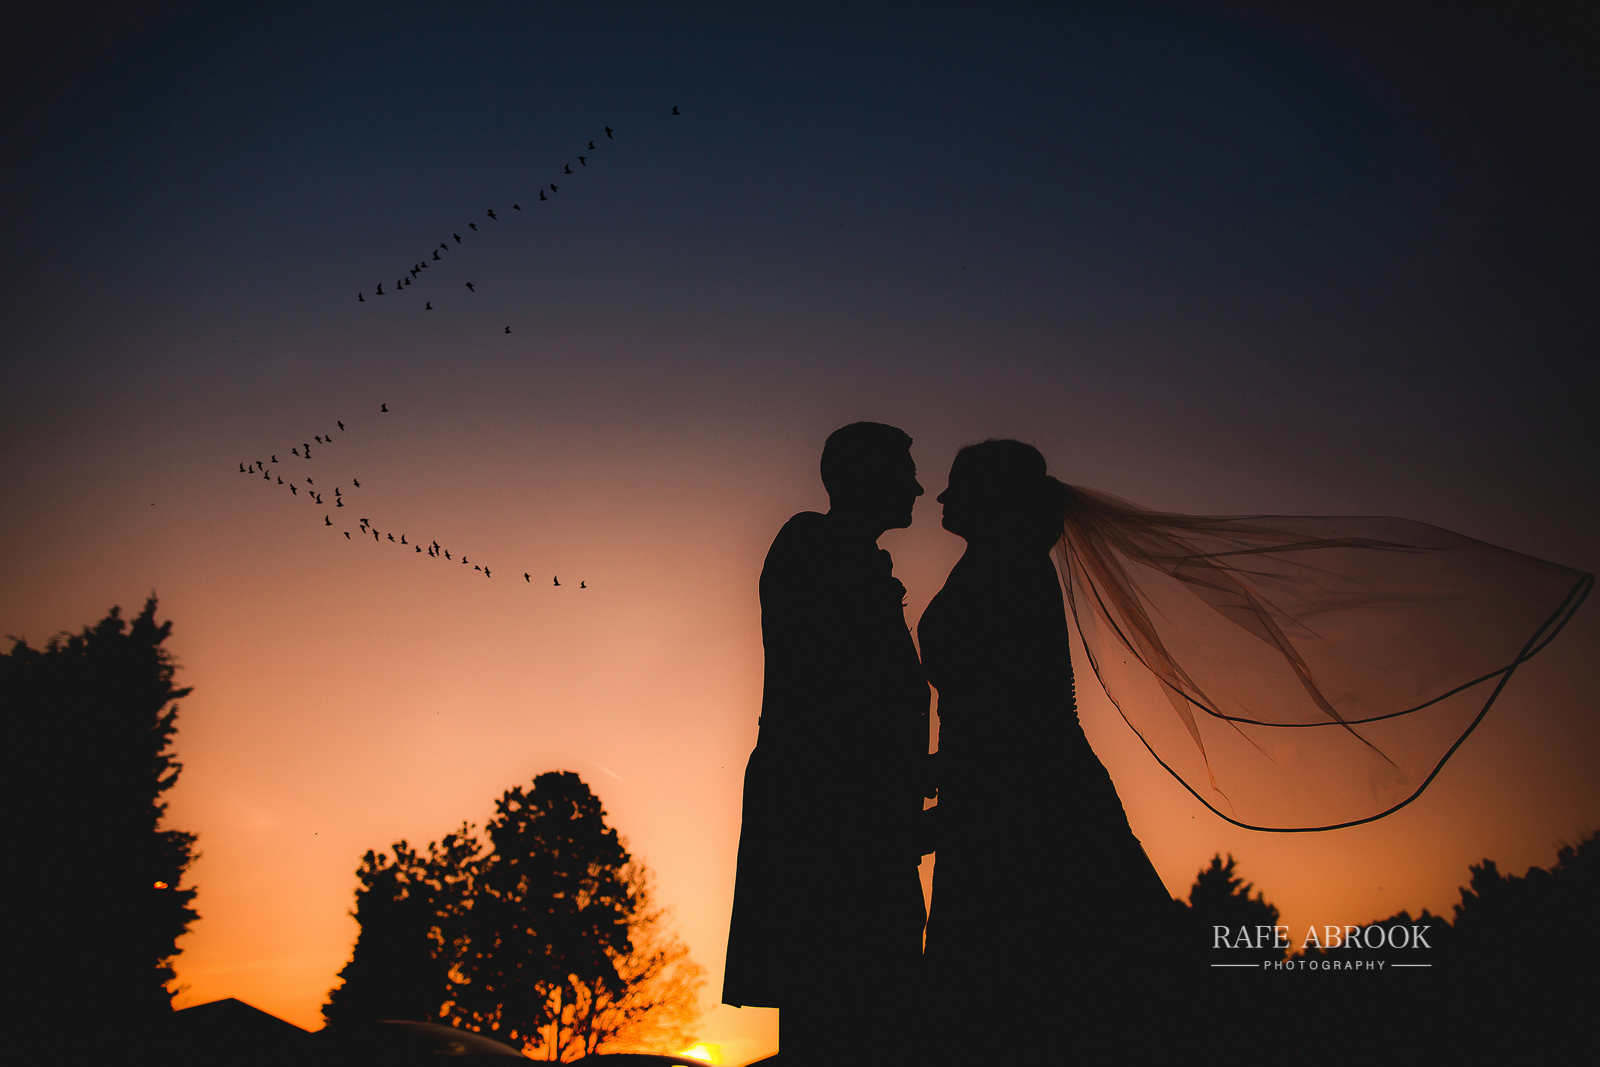 south farm wedding royston hertfordshire wedding photographer rafe abrook photography-1936.jpg